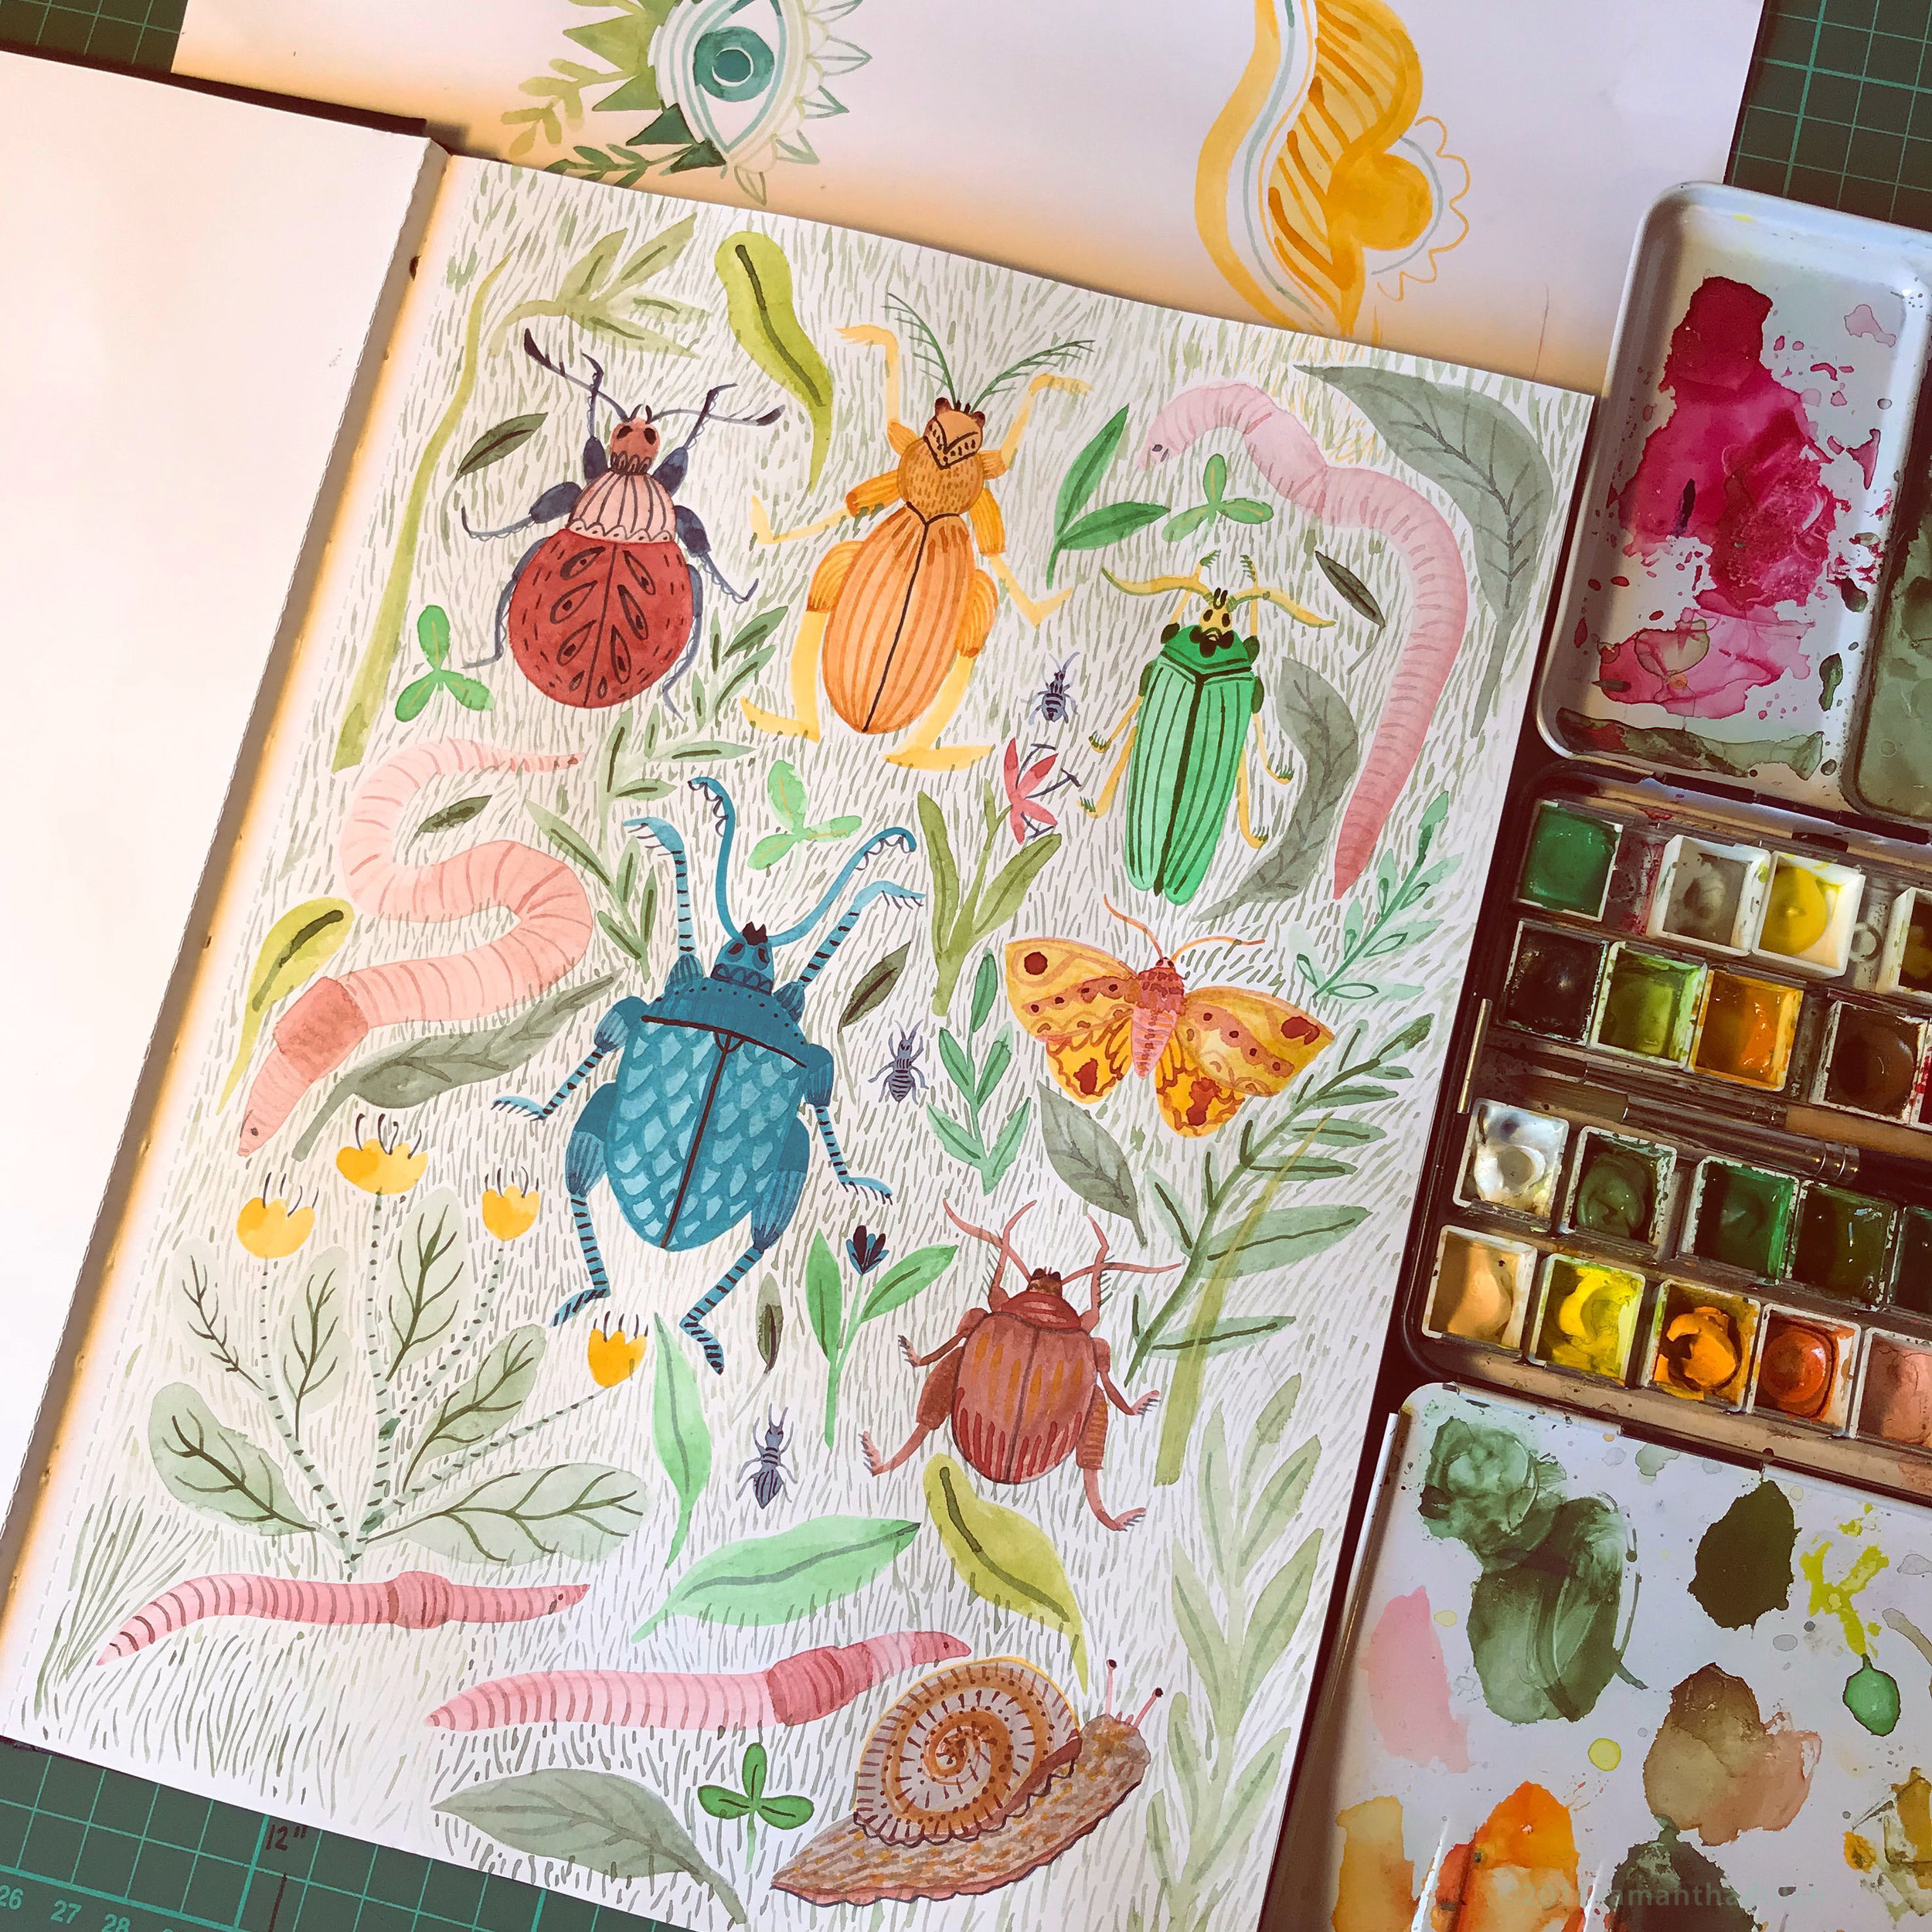 Mixing Gouache and watercolour, doodling bugs and worms, June 2018